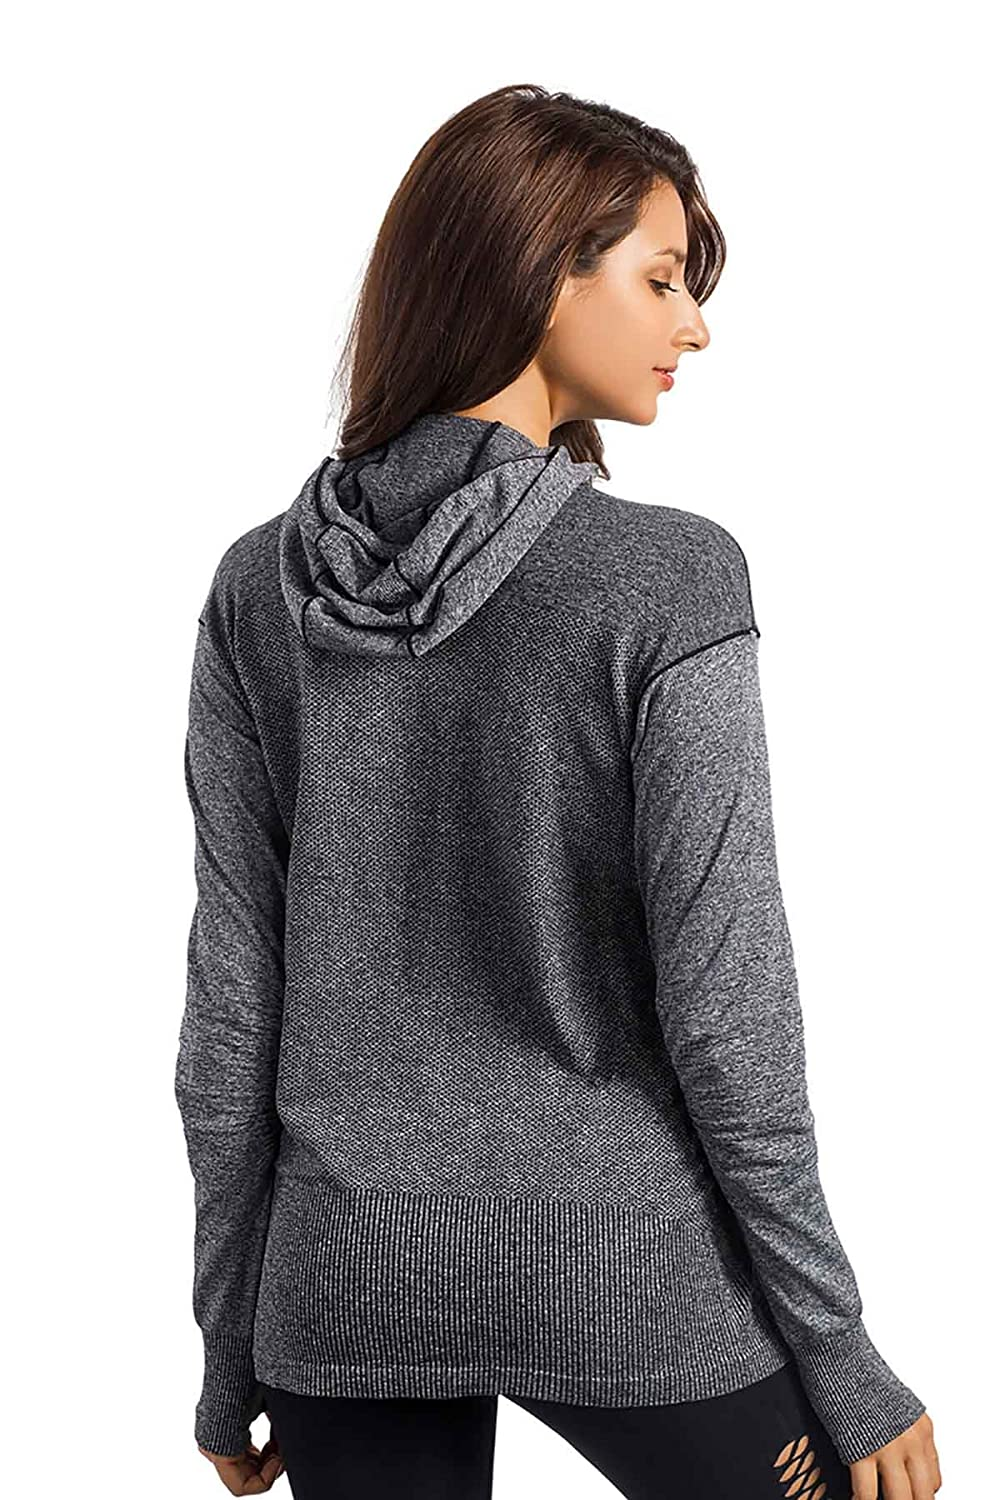 MD Womens Cowl Neck Lightweight Yoga Sport Pullover Hoodies Long Sleeve Running Top Sweatshirt with Thumb Holes